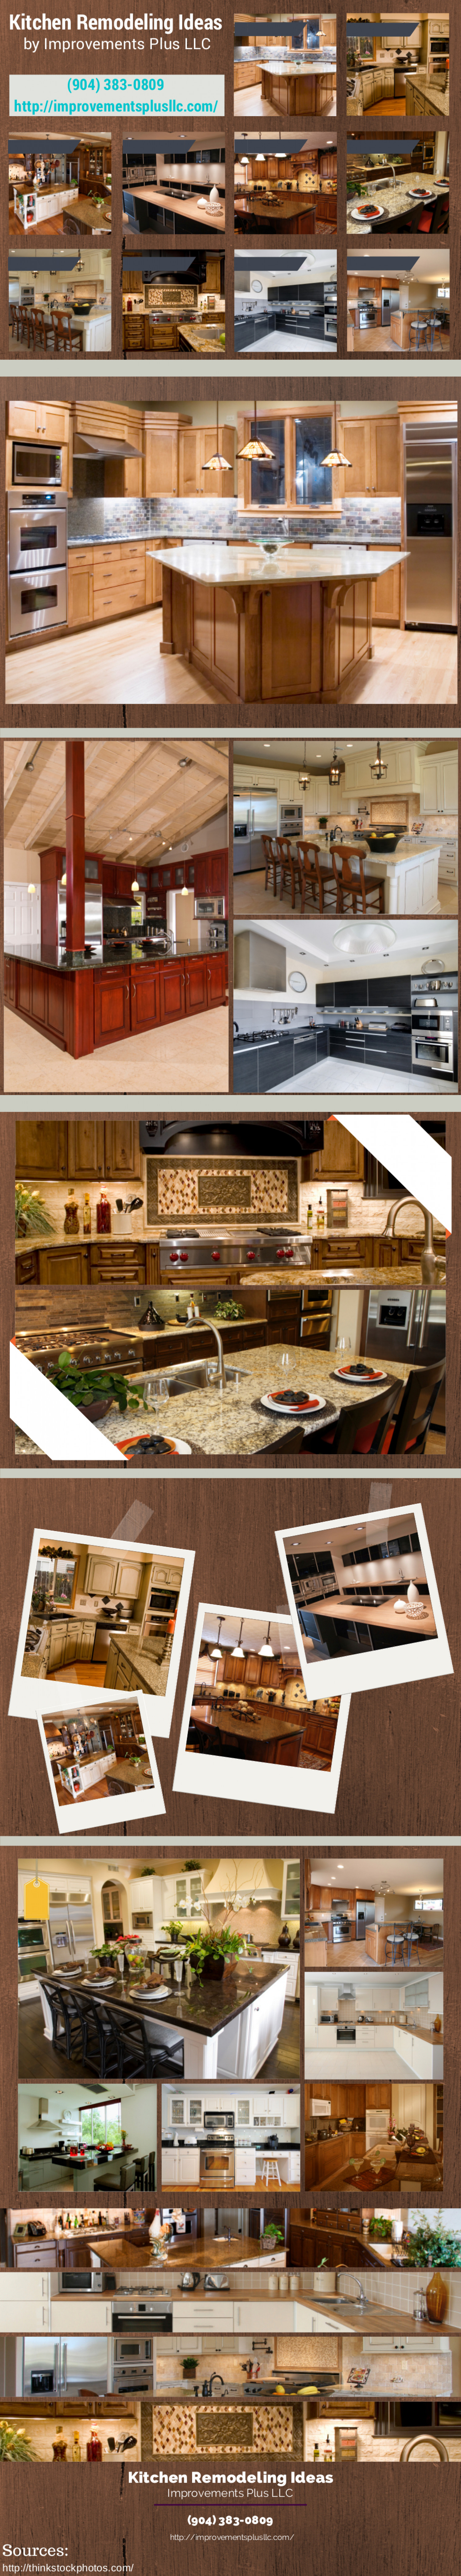 Kitchen Remodeling Ideas Infographic